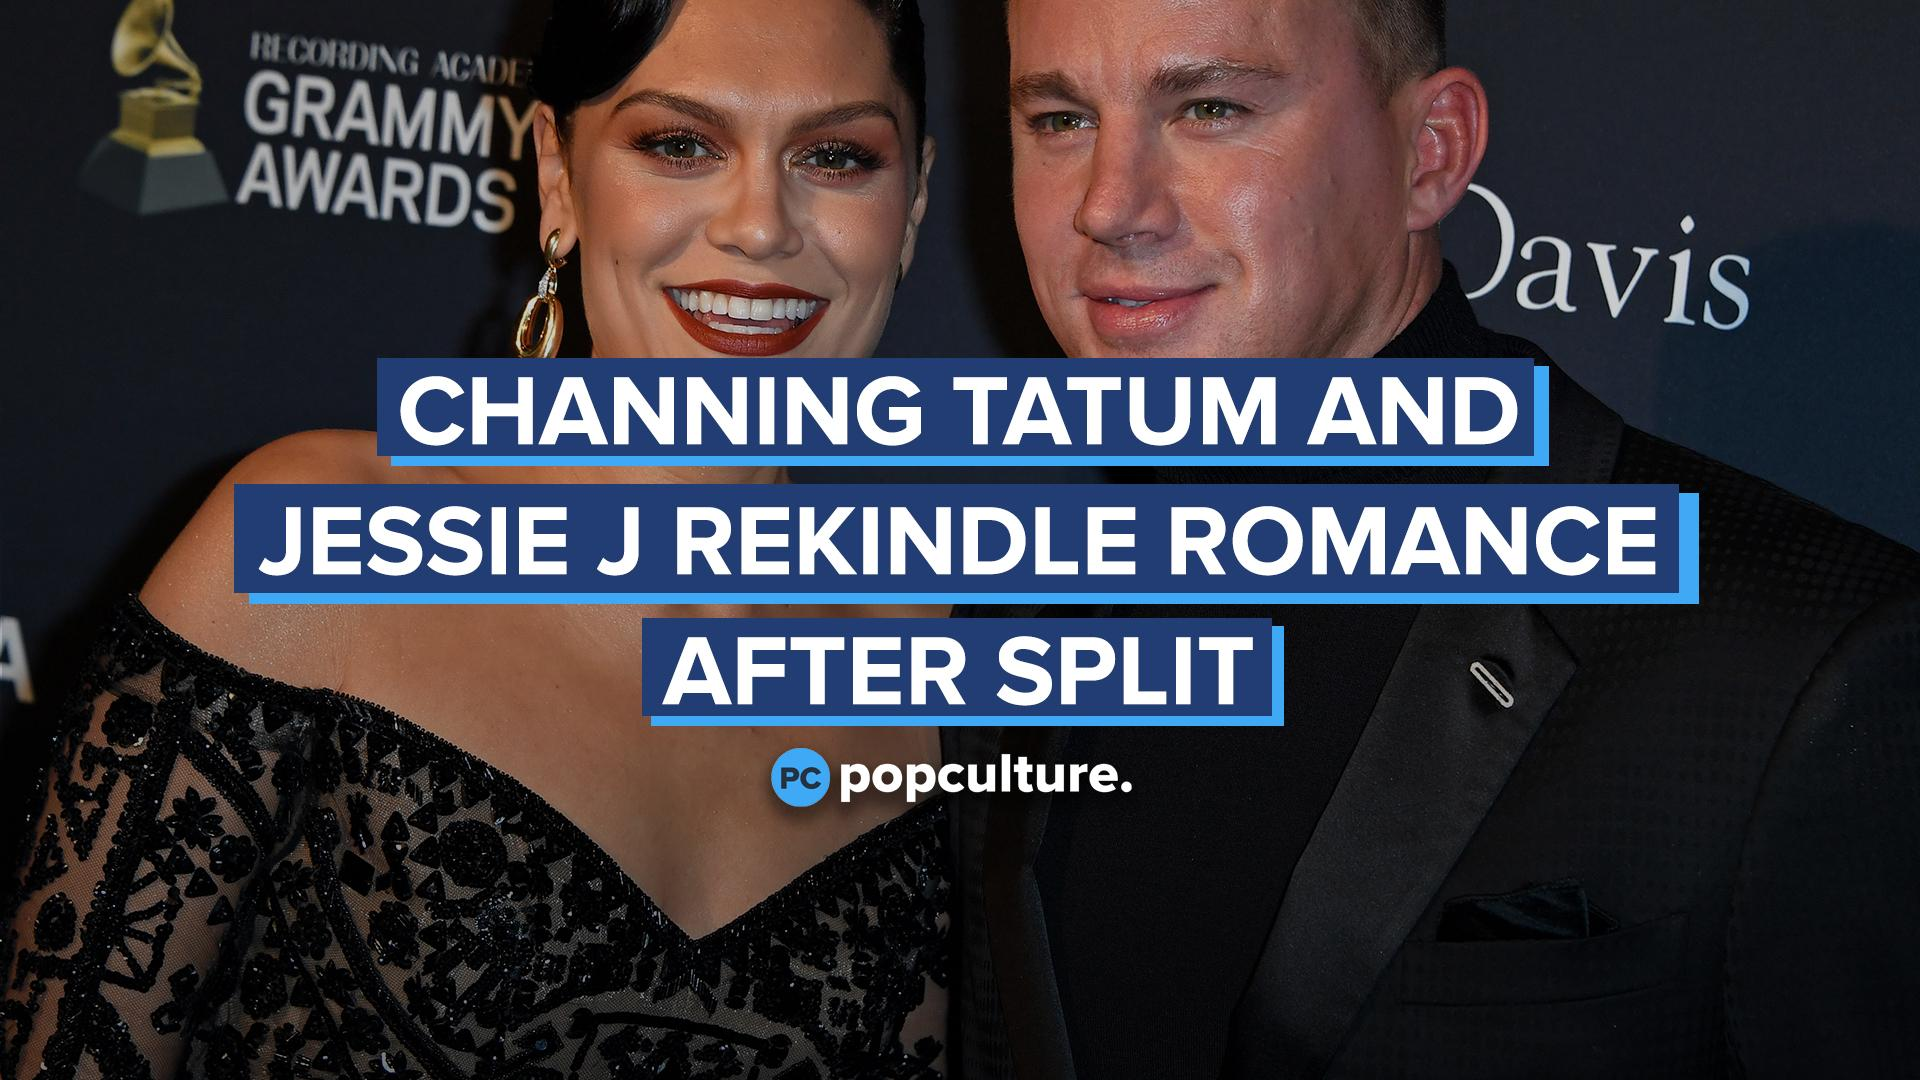 Channing Tatum and Jessi J Rekindle Romance After Split screen capture